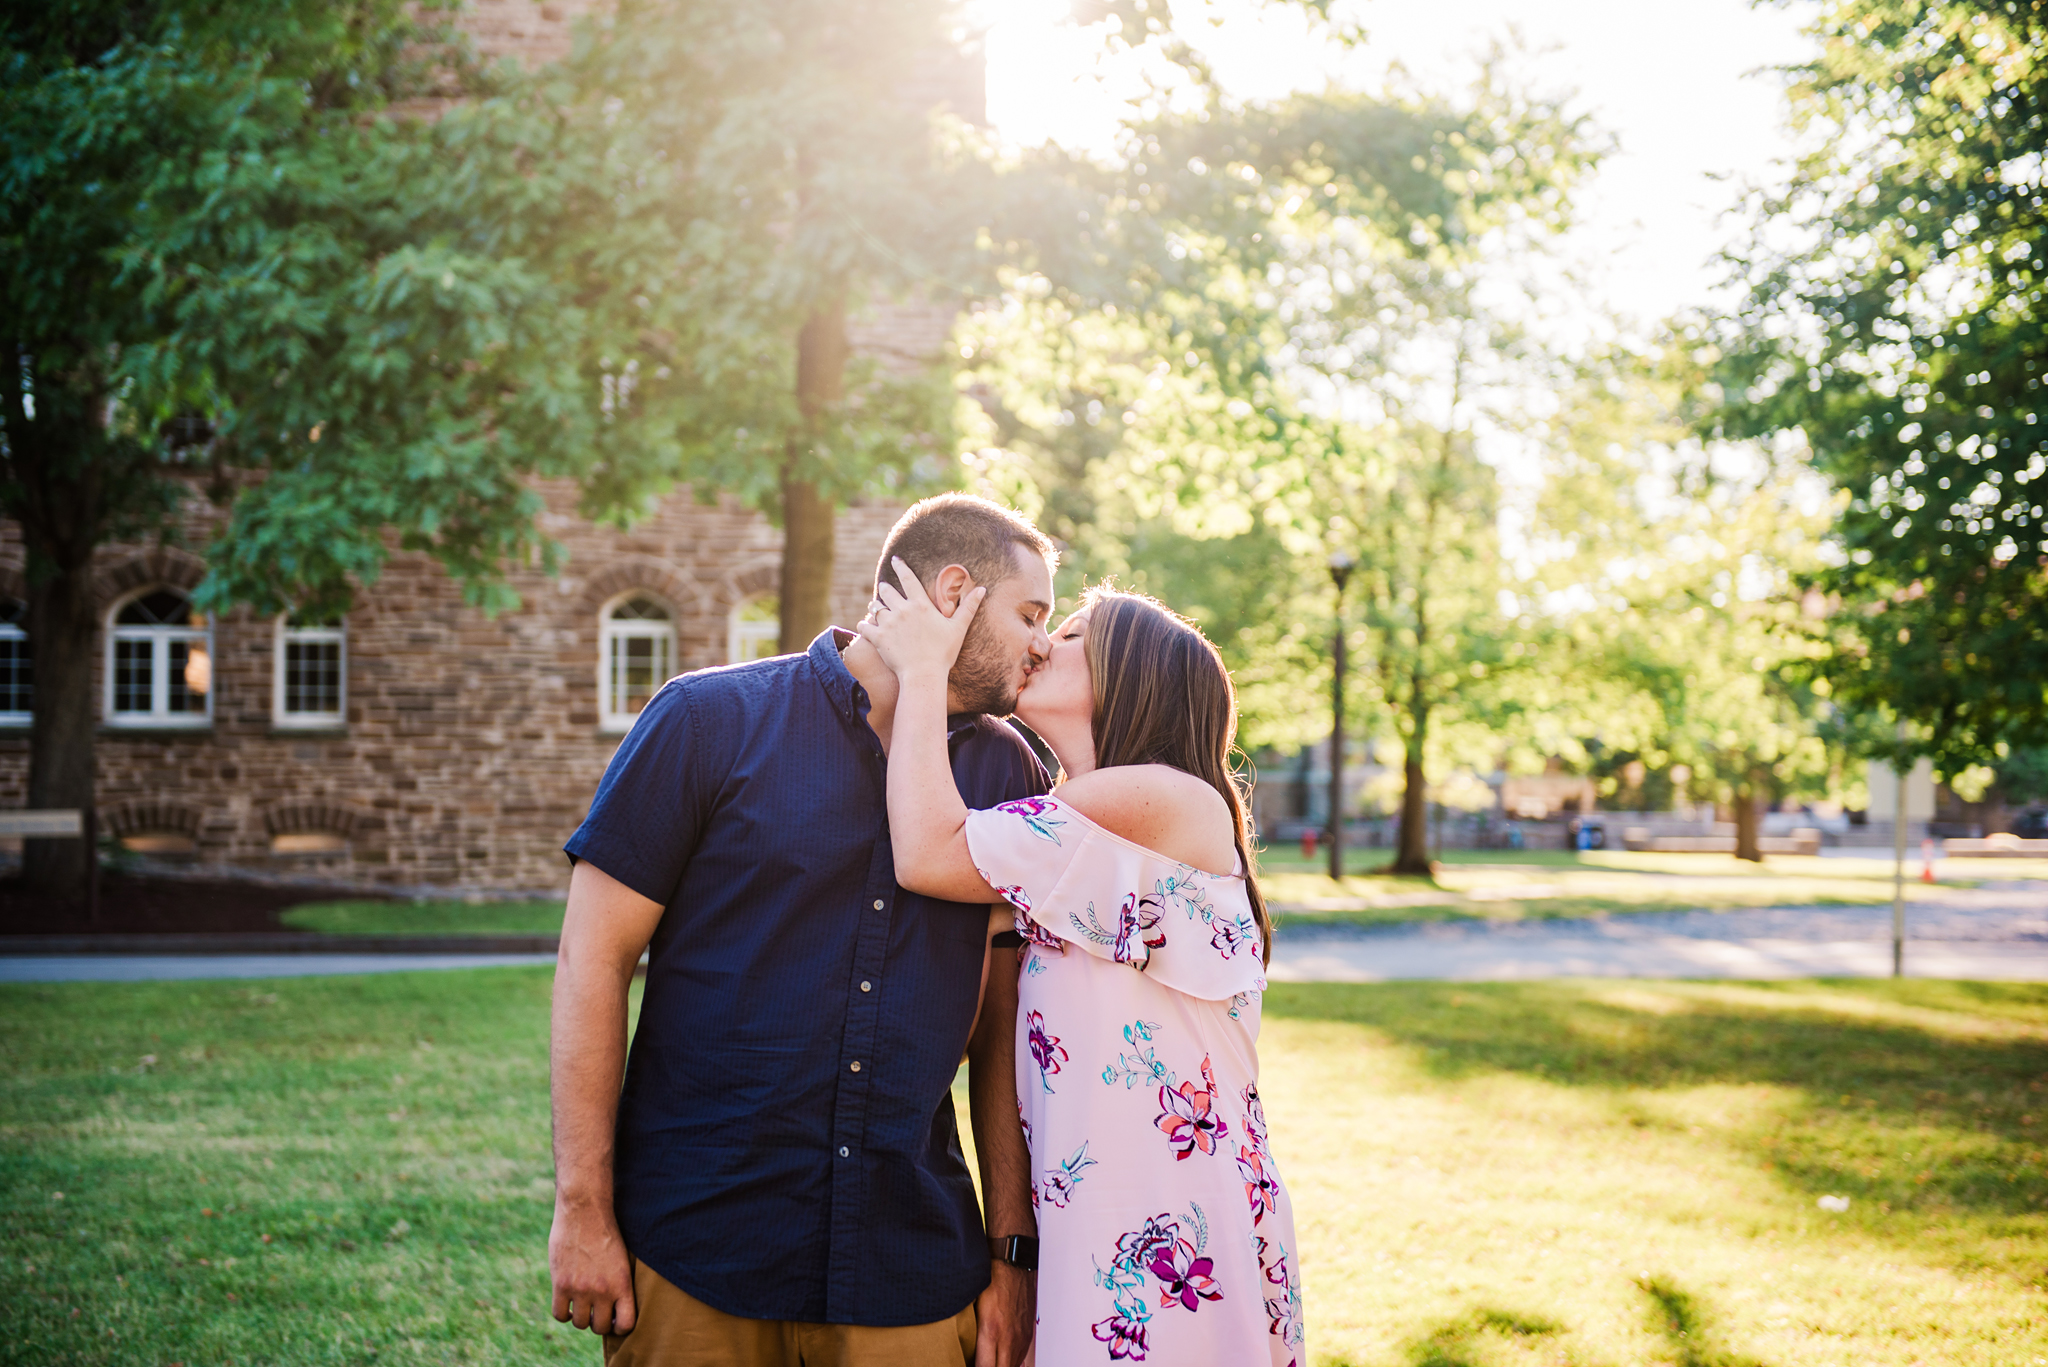 JILLSTUDIO_Hamilton_College_Root_Glen_Central_NY_Engagement_Session_Rochester_NY_Photographer_DSC_9459.jpg